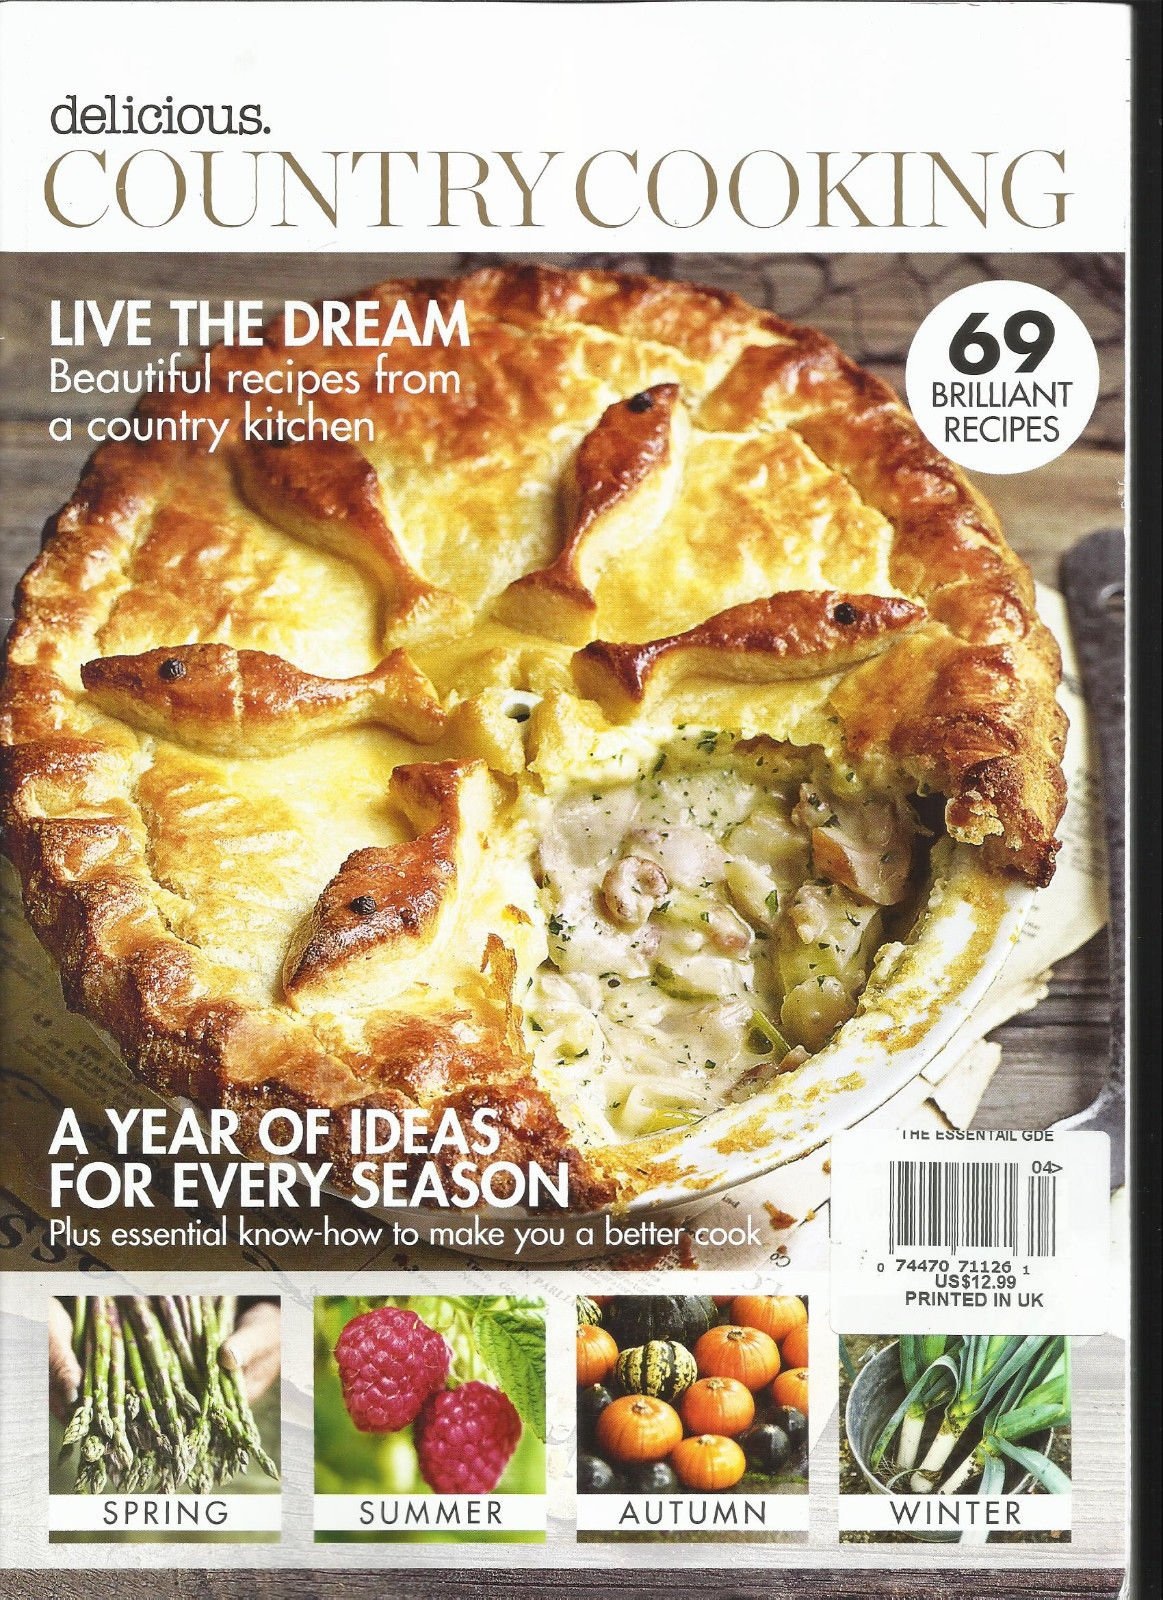 DELICIOUS COUNTRY COOKING MAGAZINE, ISSUE, NO. 4 69 BRILLIANT RECIPES